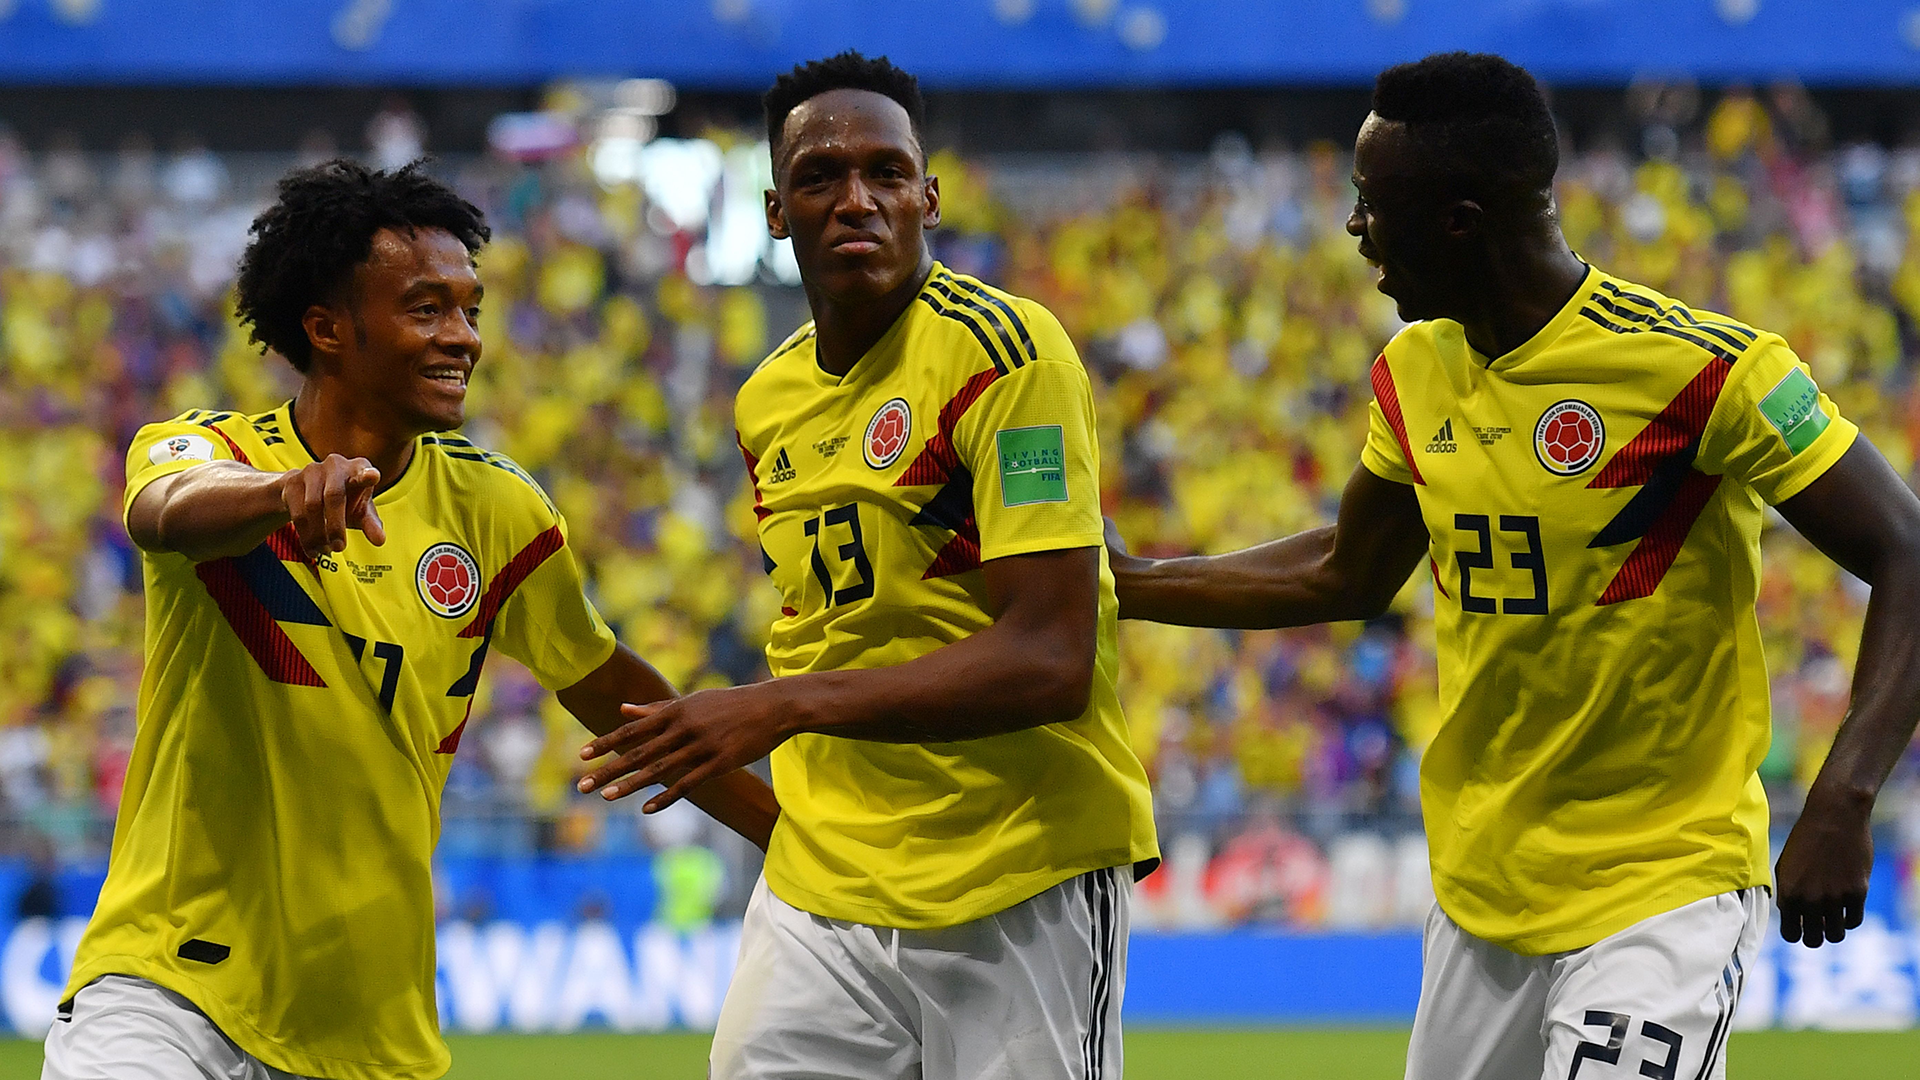 Colombia Senegal World Cup 2018